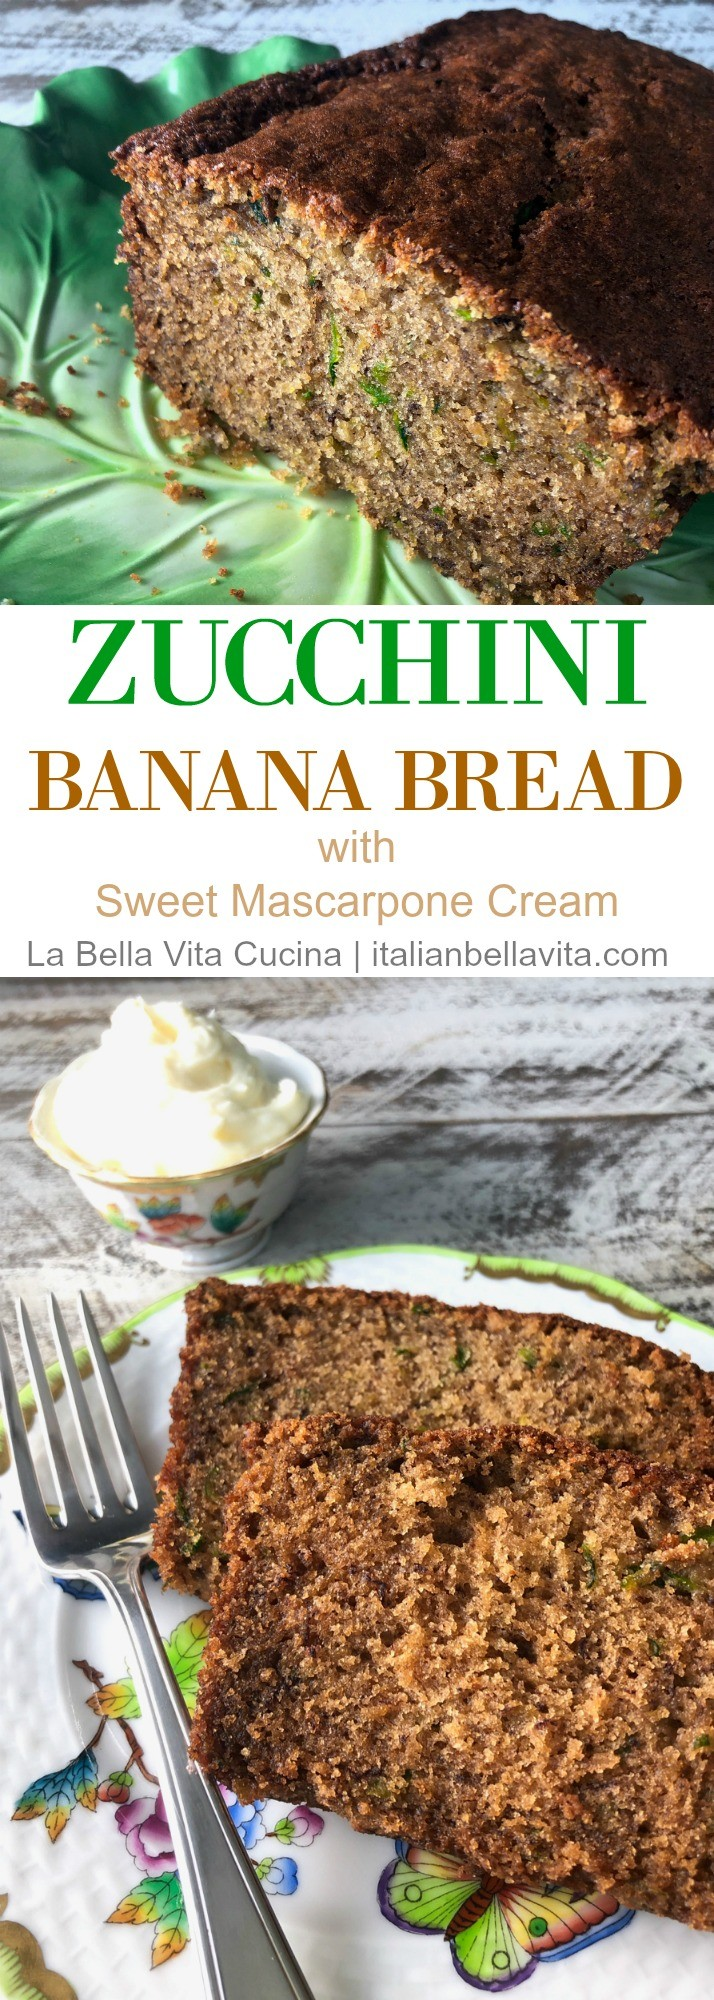 Zucchini Banana Bread with Sweet Mascarpone Cream